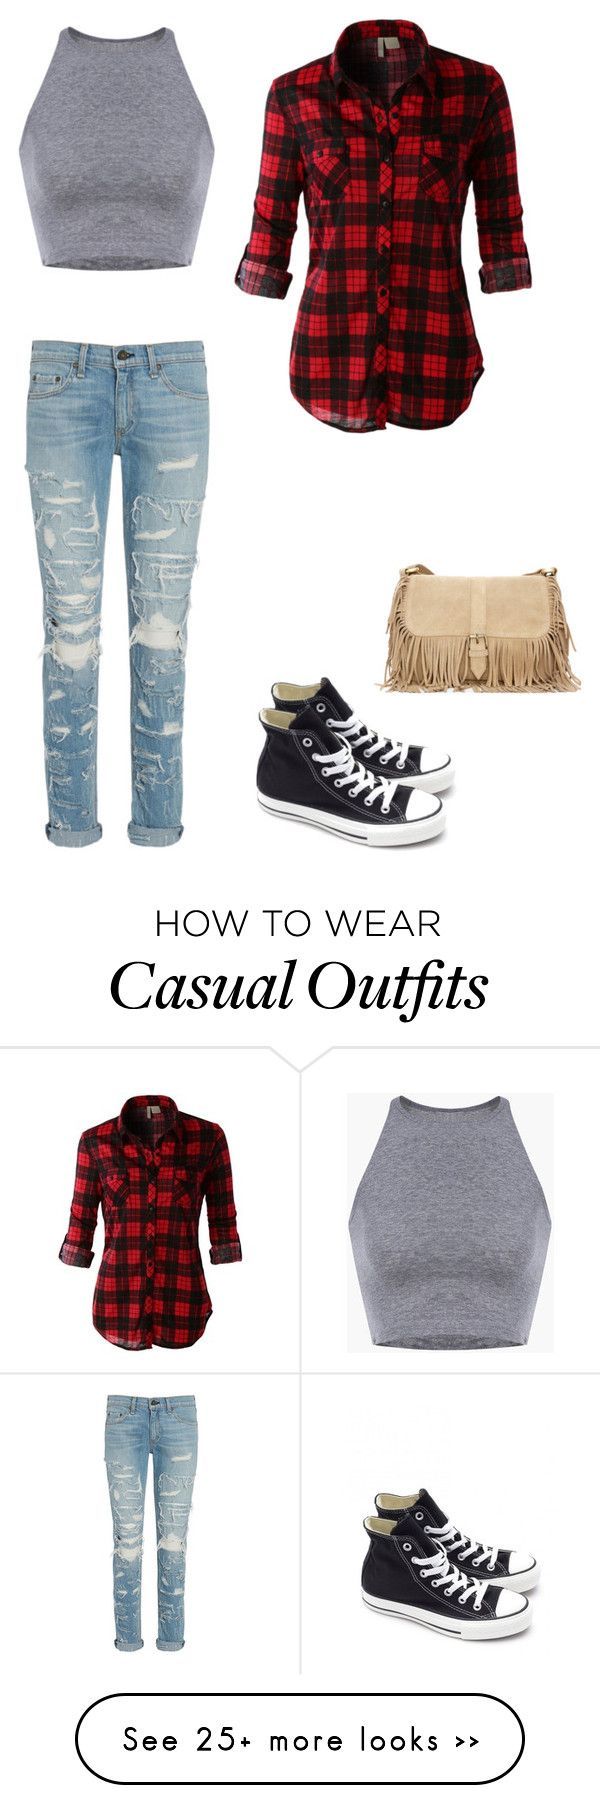 """#Casual"" by mintythemoonturtle on Polyvore featuring rag & bone, LE3NO and Converse"